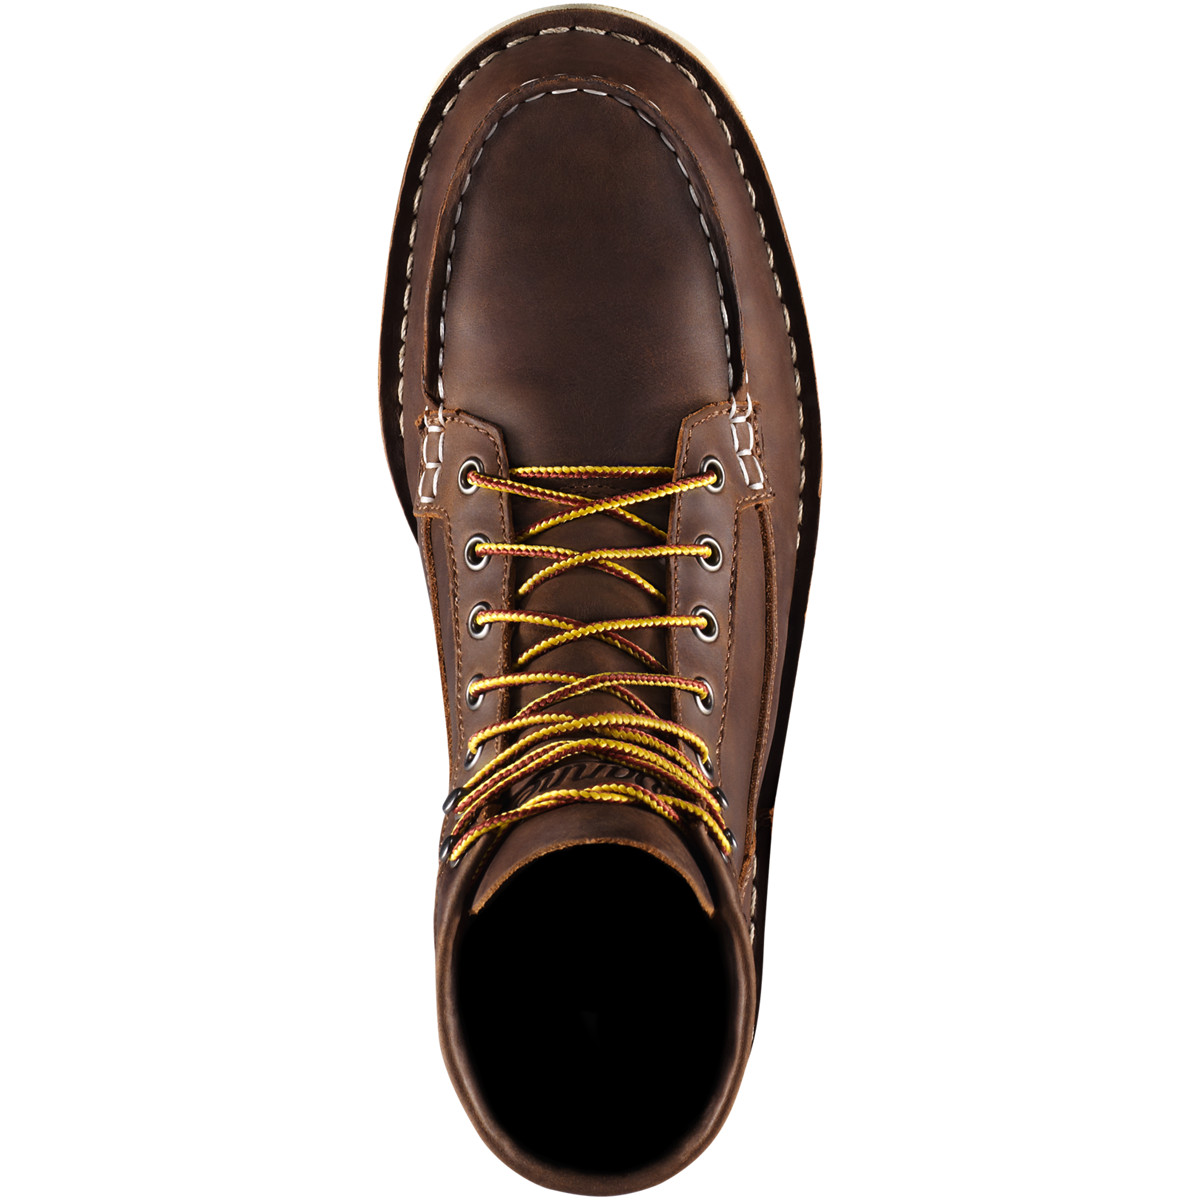 3854fd443cd8 Danner - Bull Run Moc Toe 6